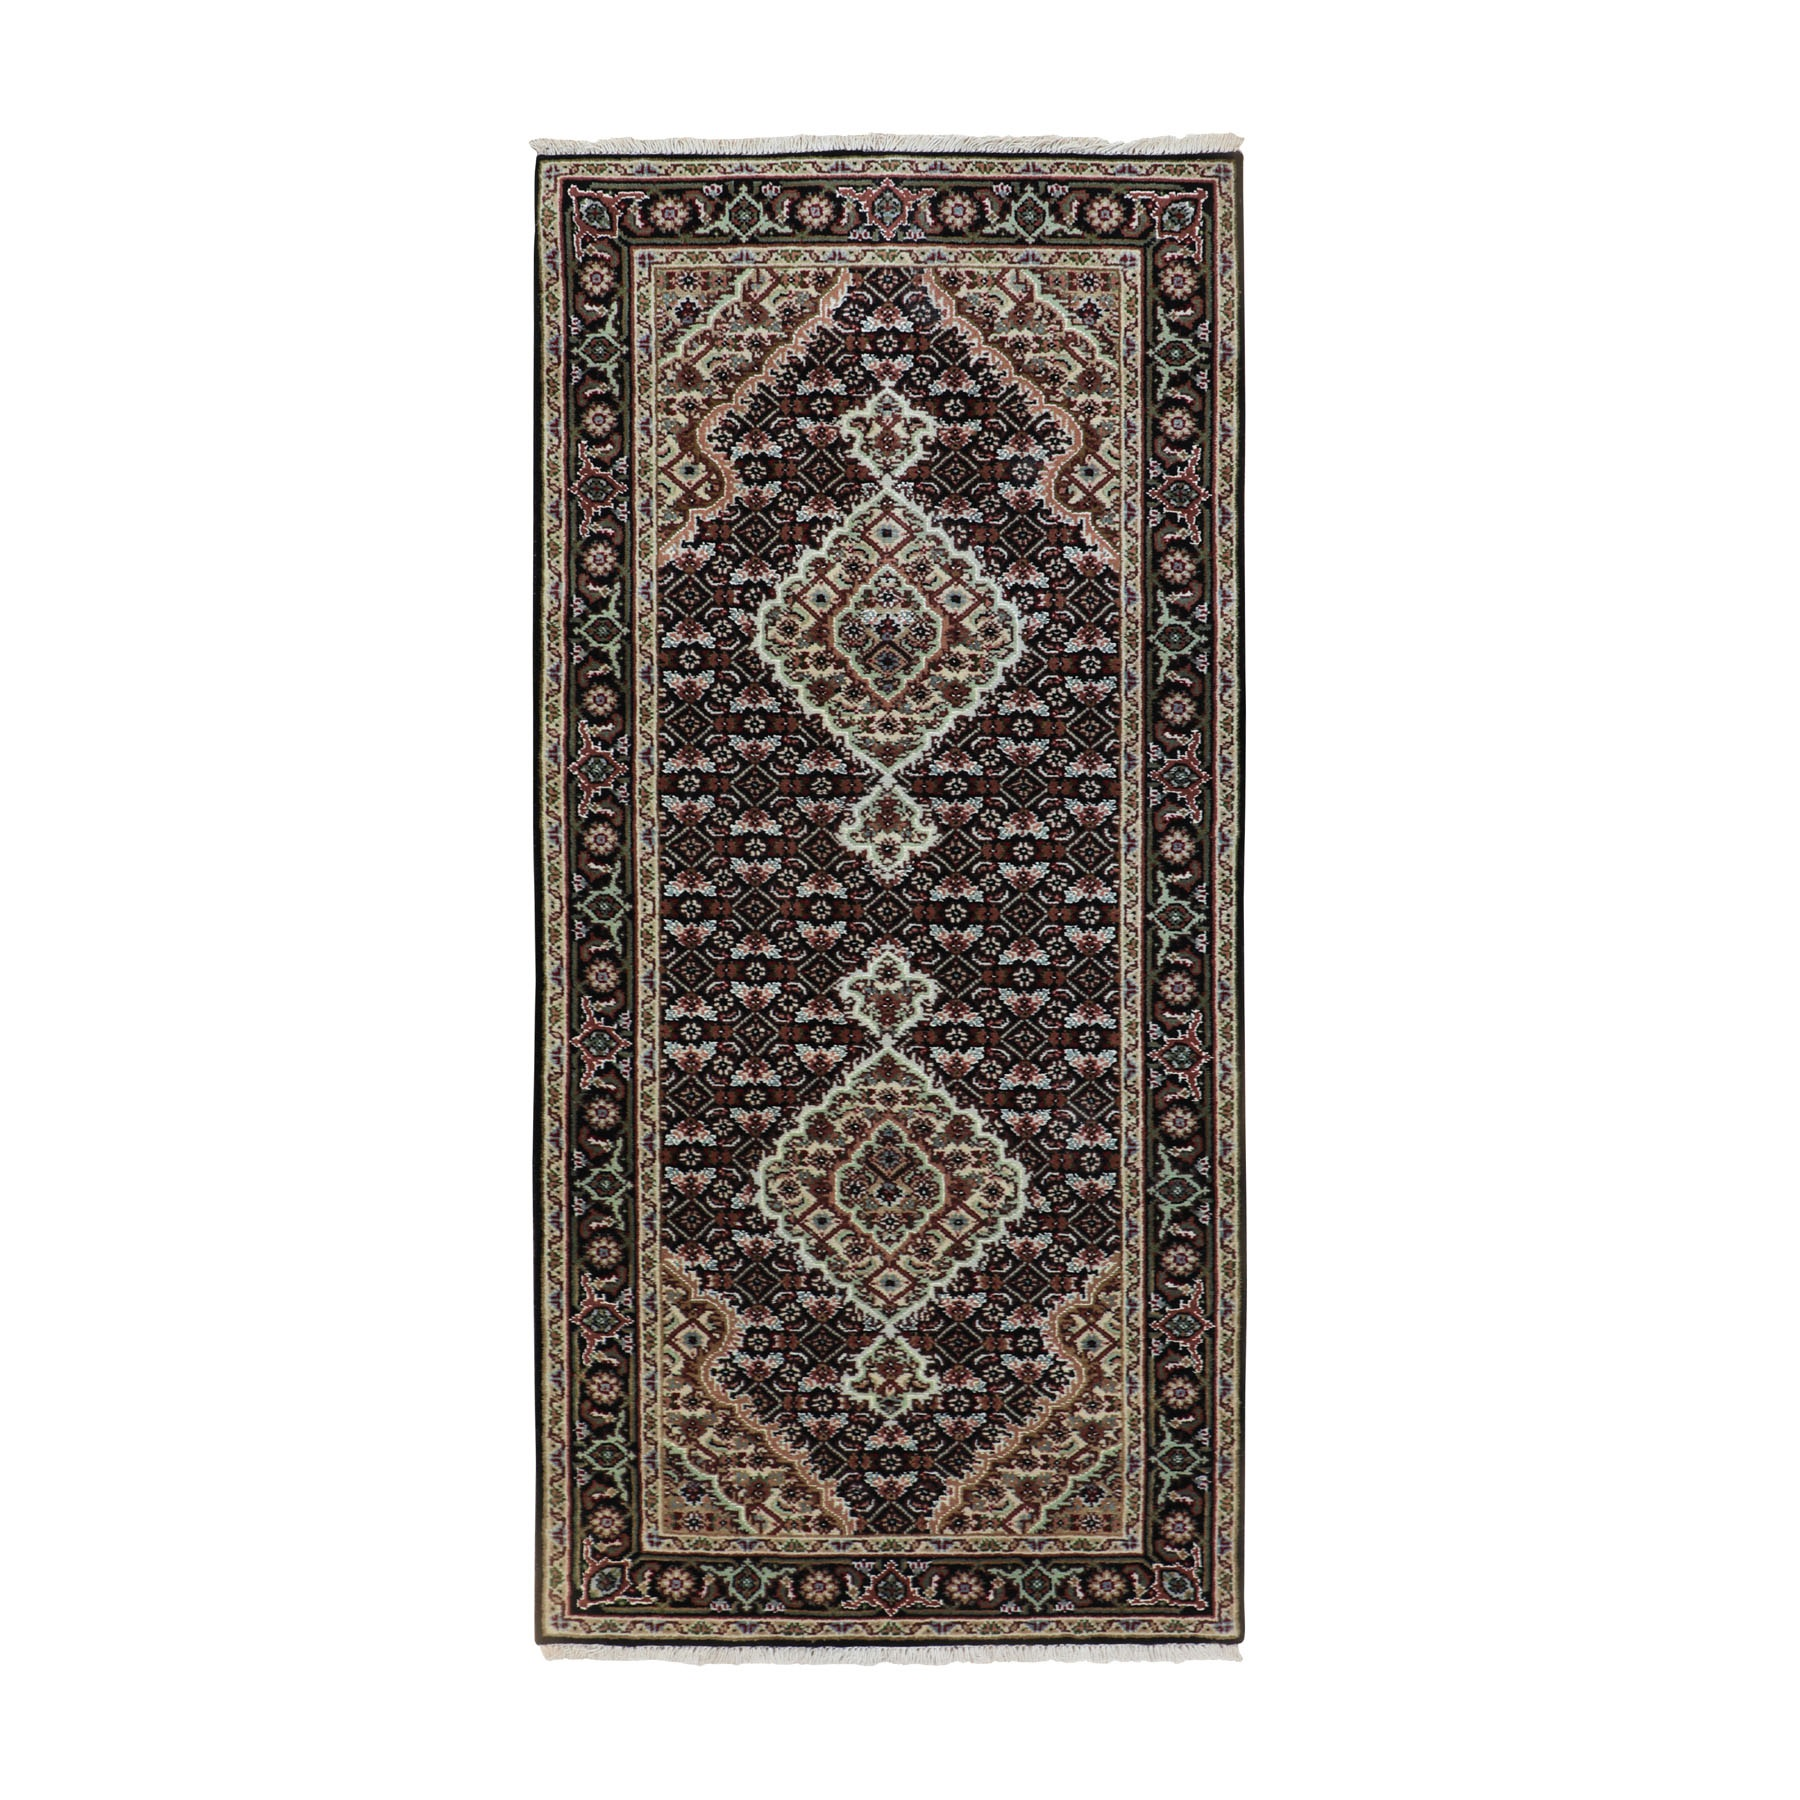 "2'7""x6' Black Mahi Fish Design Wool And Silk Hand Woven Runner Oriental Rug"